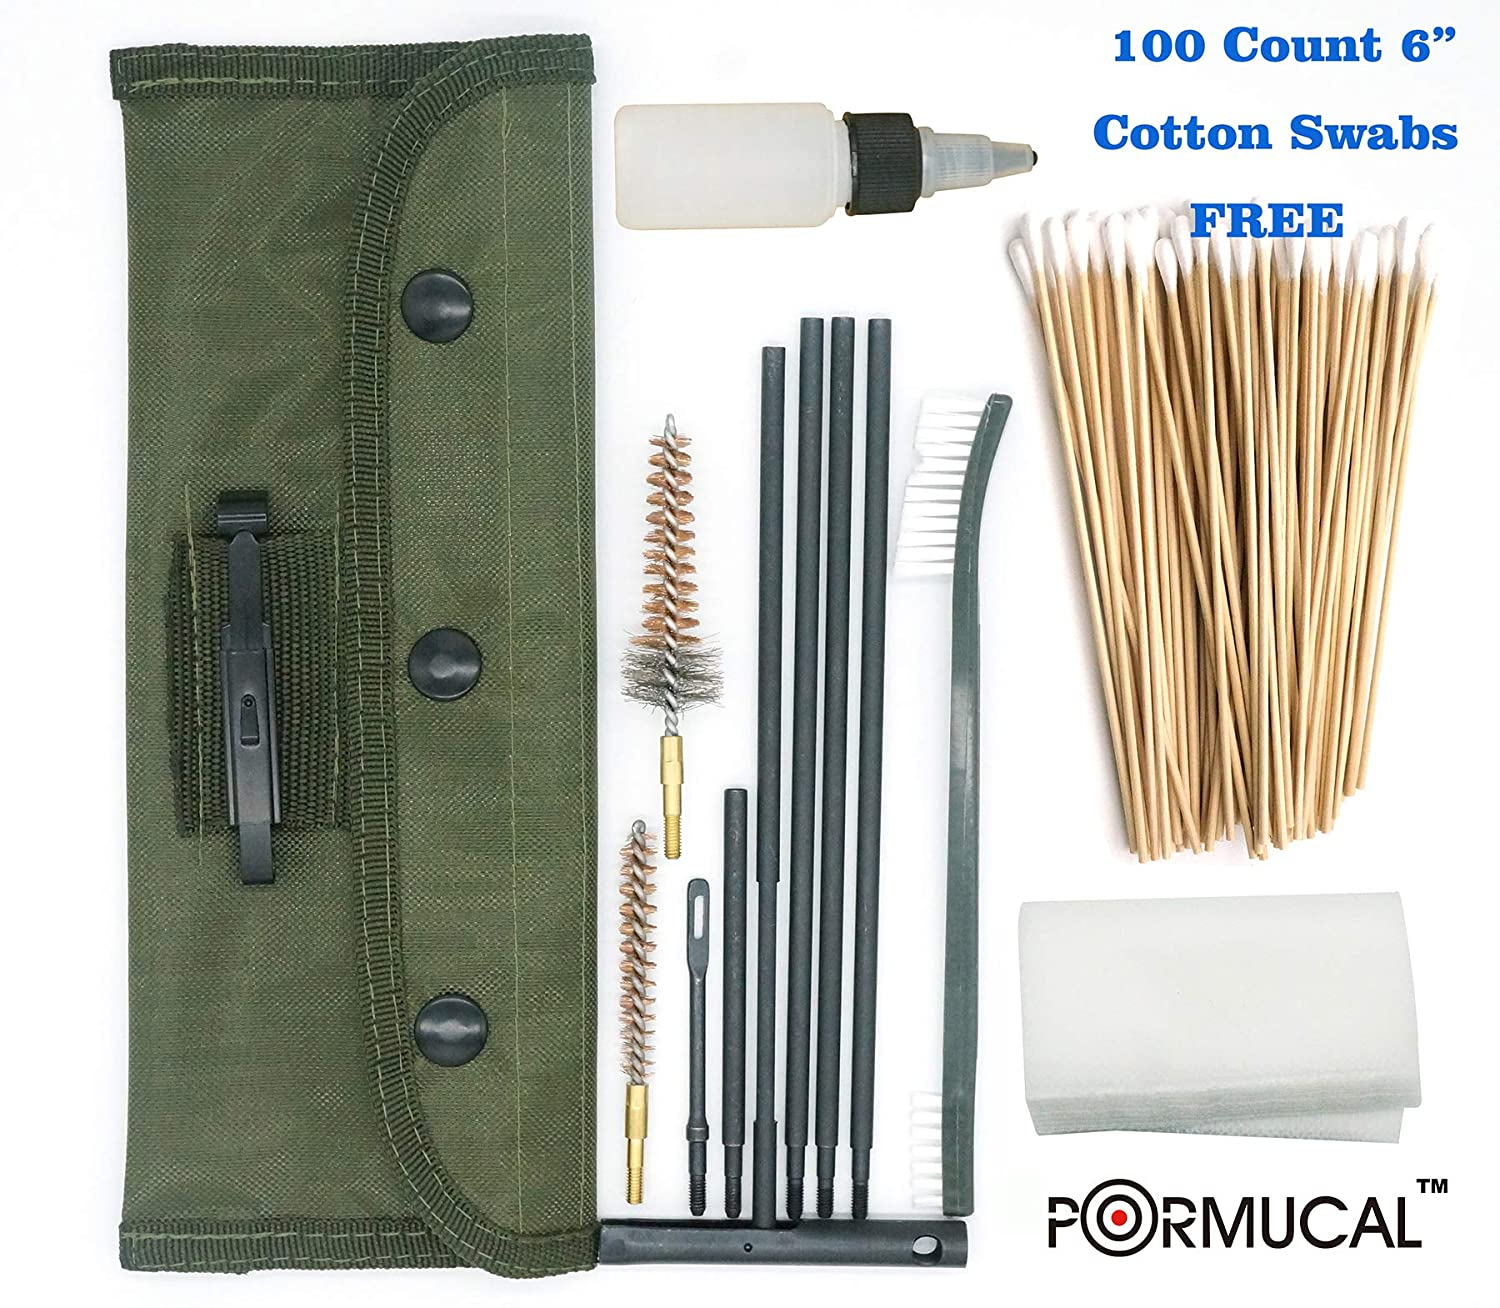 PORMUCAL Universal Gun Cleaning Kit for All M16 / AR15 Rifle 5 56mm  223   22 Caliber Military Weapons Cleaning Kit